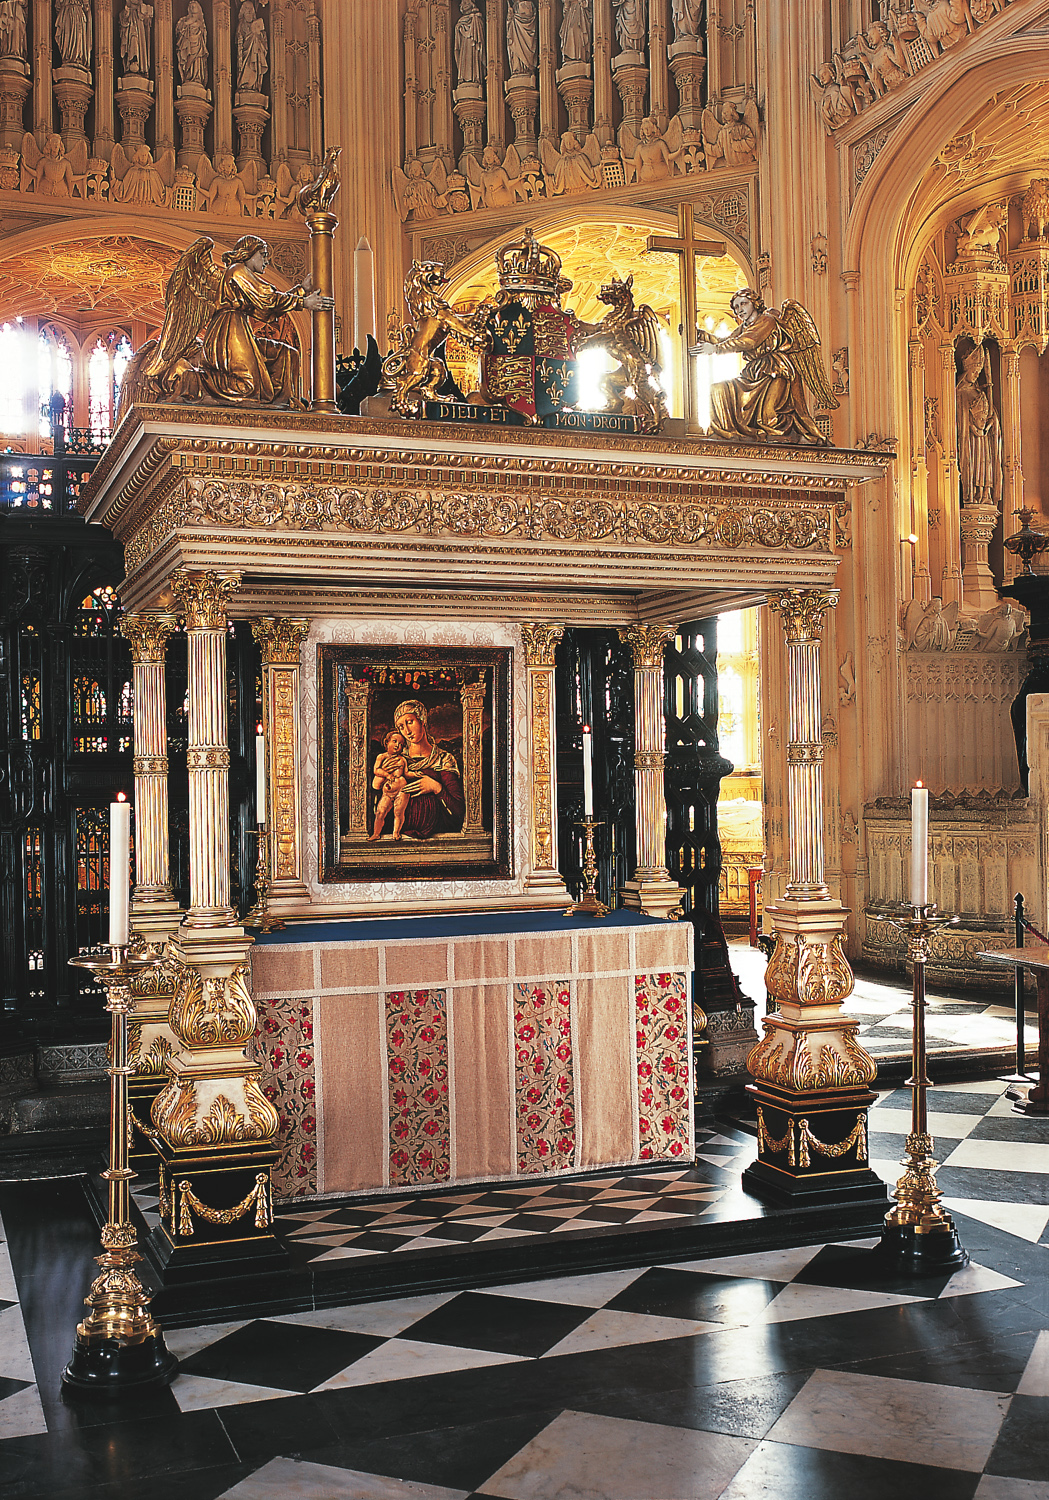 The High Altar in the Lady Chapel